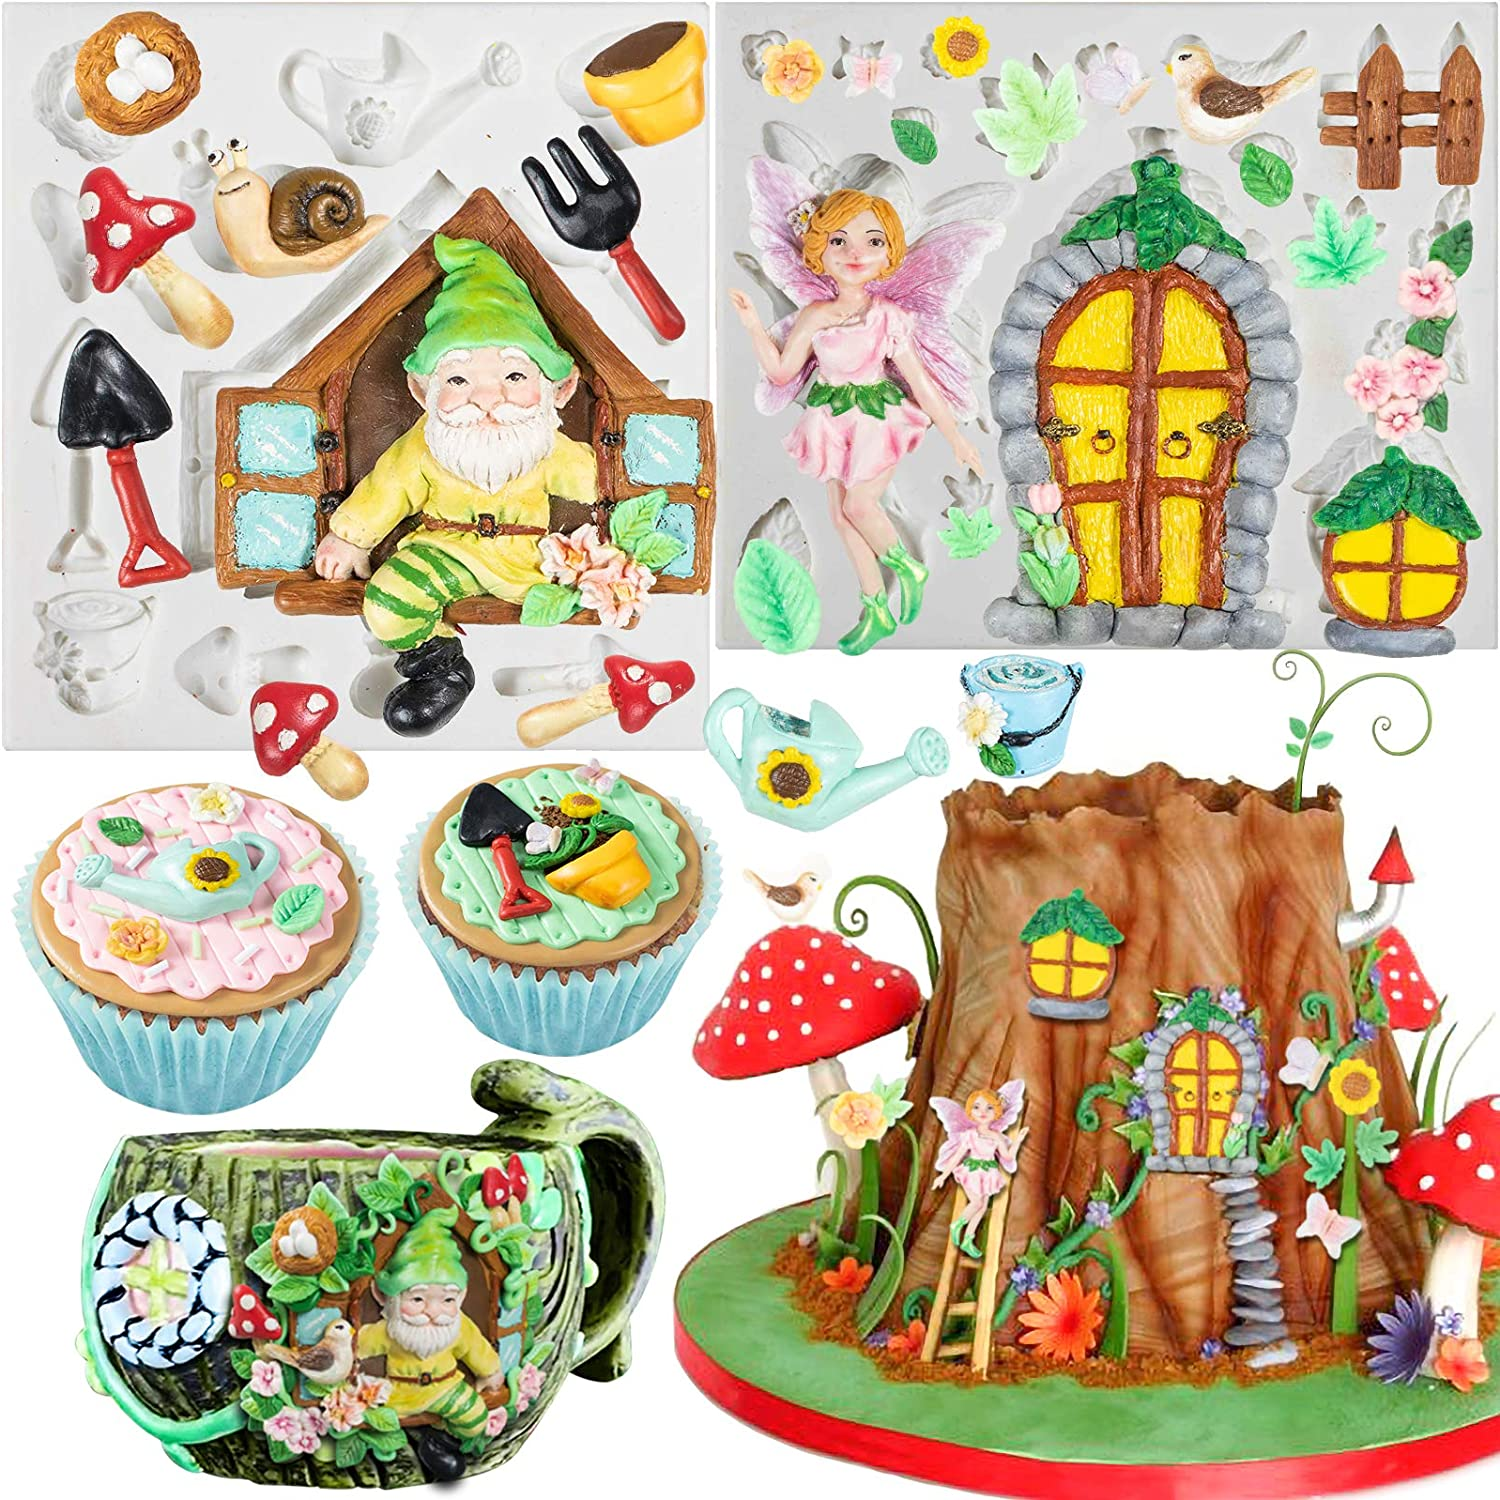 FUNSHOWCASE Fairy Garden Fondant Silicone Molds Elf Gnome Home Out The Door and Window for Sugarcraft Cake Decorating Cupcake Topper Chocolate Epoxy Resin Polymer Clay 27-Cavity 0.3-3.3inch